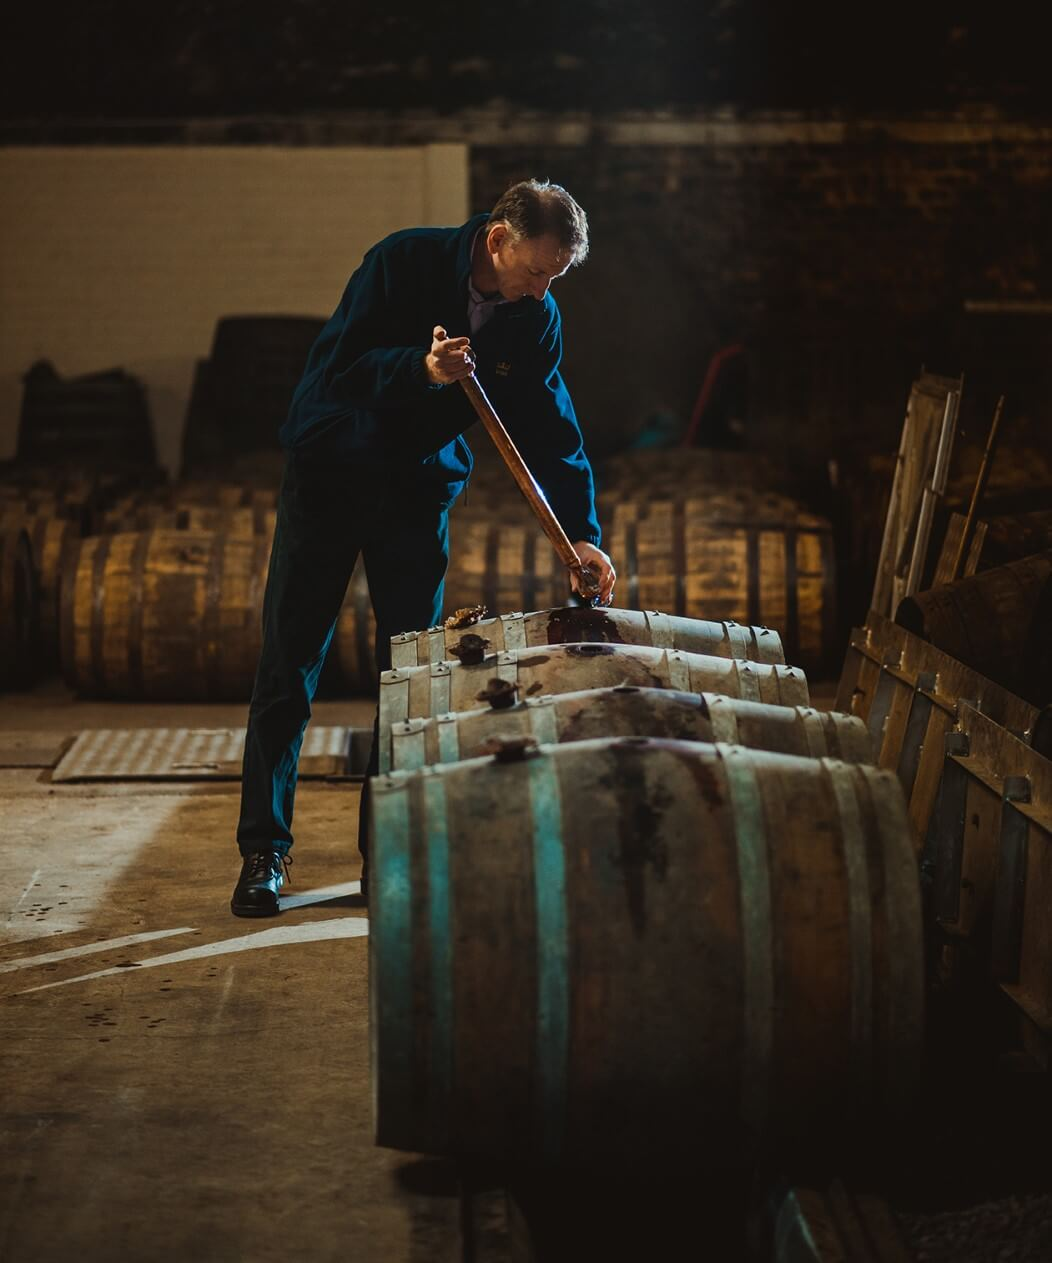 Sampling whisky from the cask